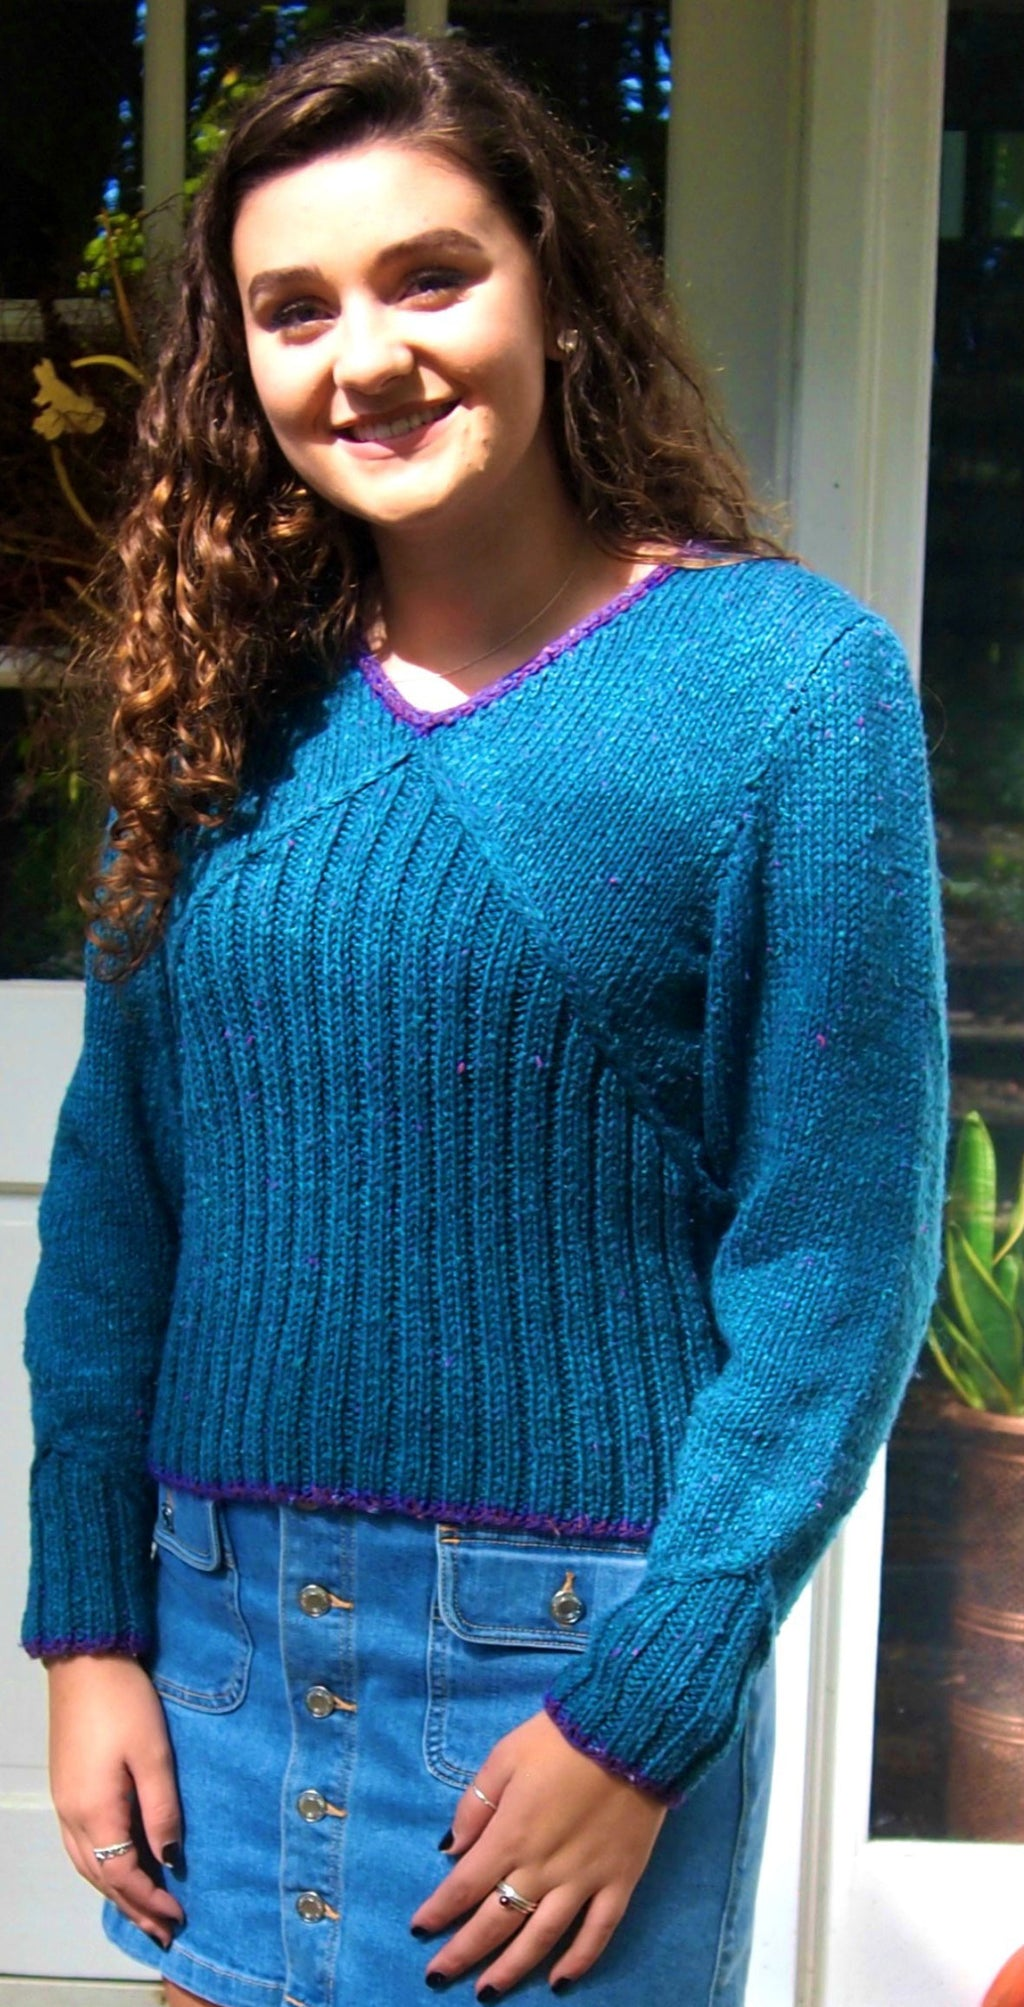 Double V Sweater - Designed by Christiane Burkhard